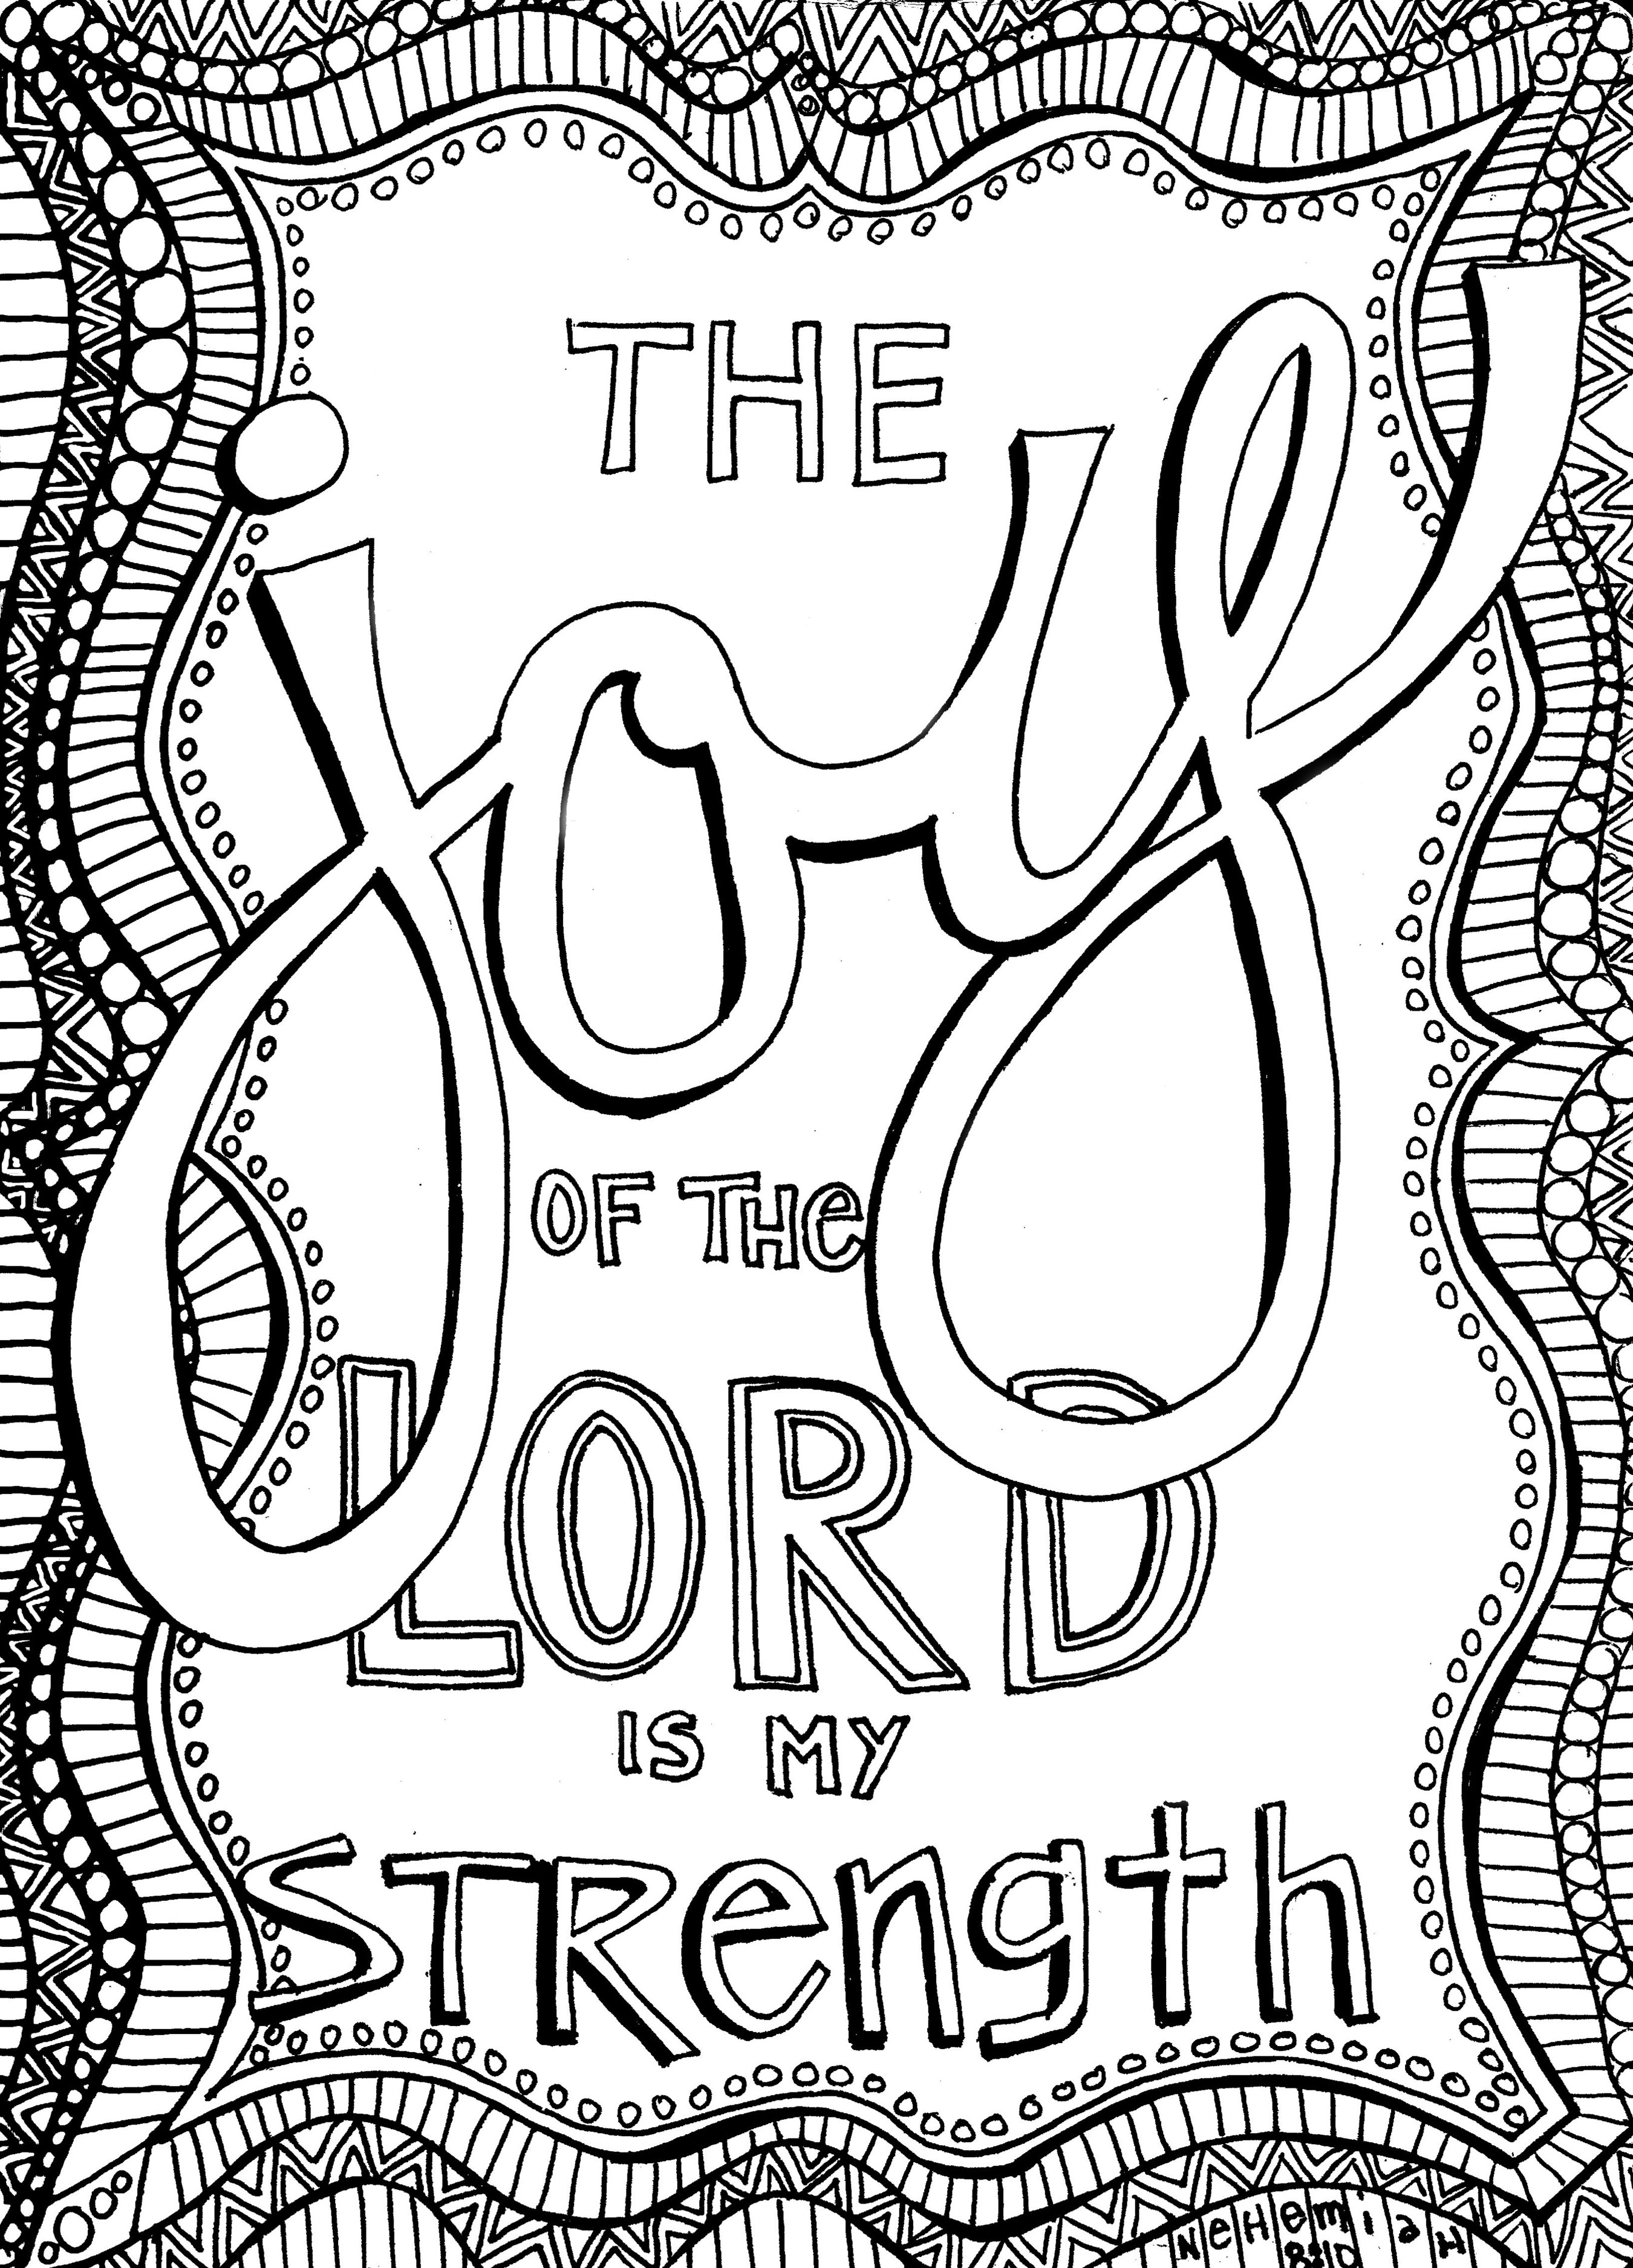 Christian Printable Coloring Sheets For Girls  Free Christian Coloring Pages for Adults Roundup